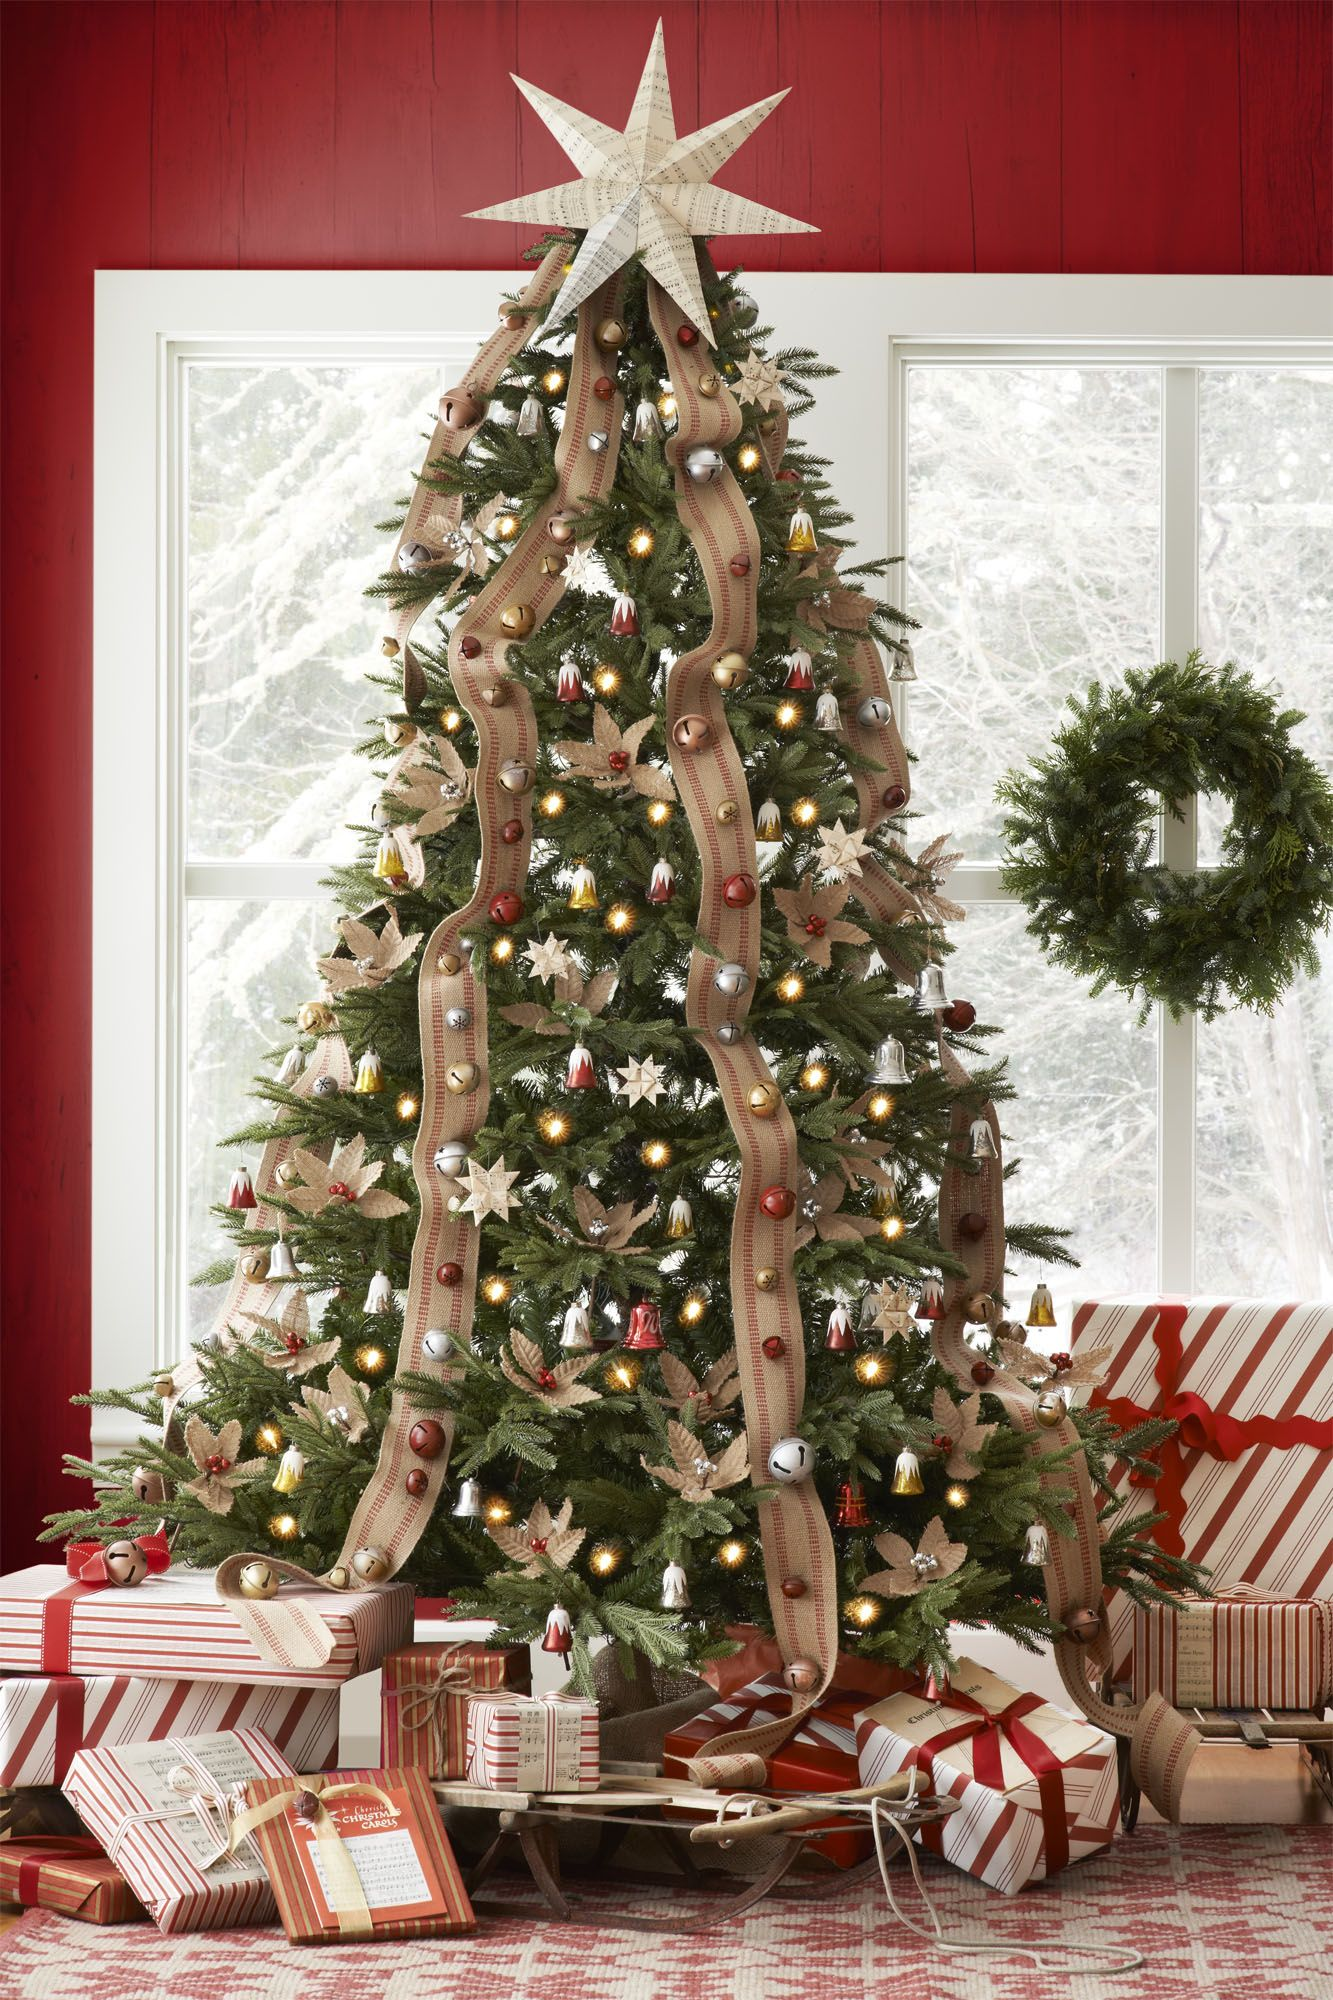 42 Unique Christmas Tree Decorations - 2019 Ideas for ... on christmas light balls, christmas bulbs, christmas balls decorations, christmas vector, happy new year banner, christmas banners for websites, christmas outdoor banners, santa claus banner, christmas backgrounds, jingle bells banner, lights banner, snow banner, holiday banner, church banner, christmas borders clip art, christmas clipart, halloween banner, hearts banner, christmas ornaments,